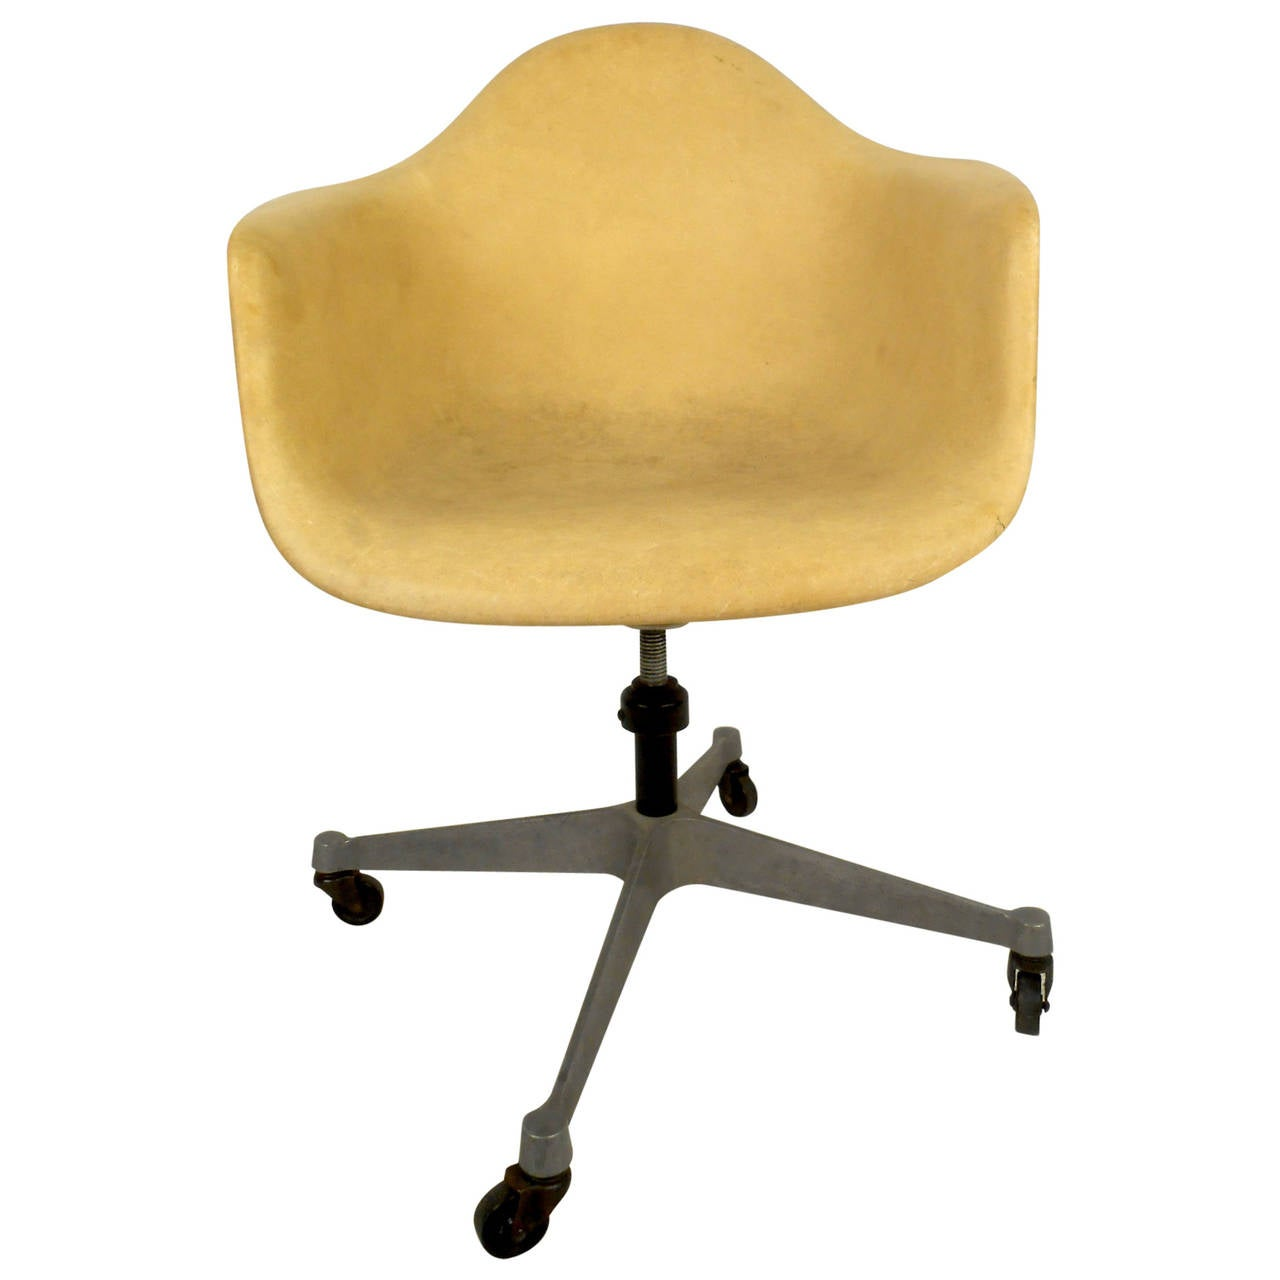 Mid century modern fiberglass shell chair with wheels by herman miller for sa - Chaise herman miller ...